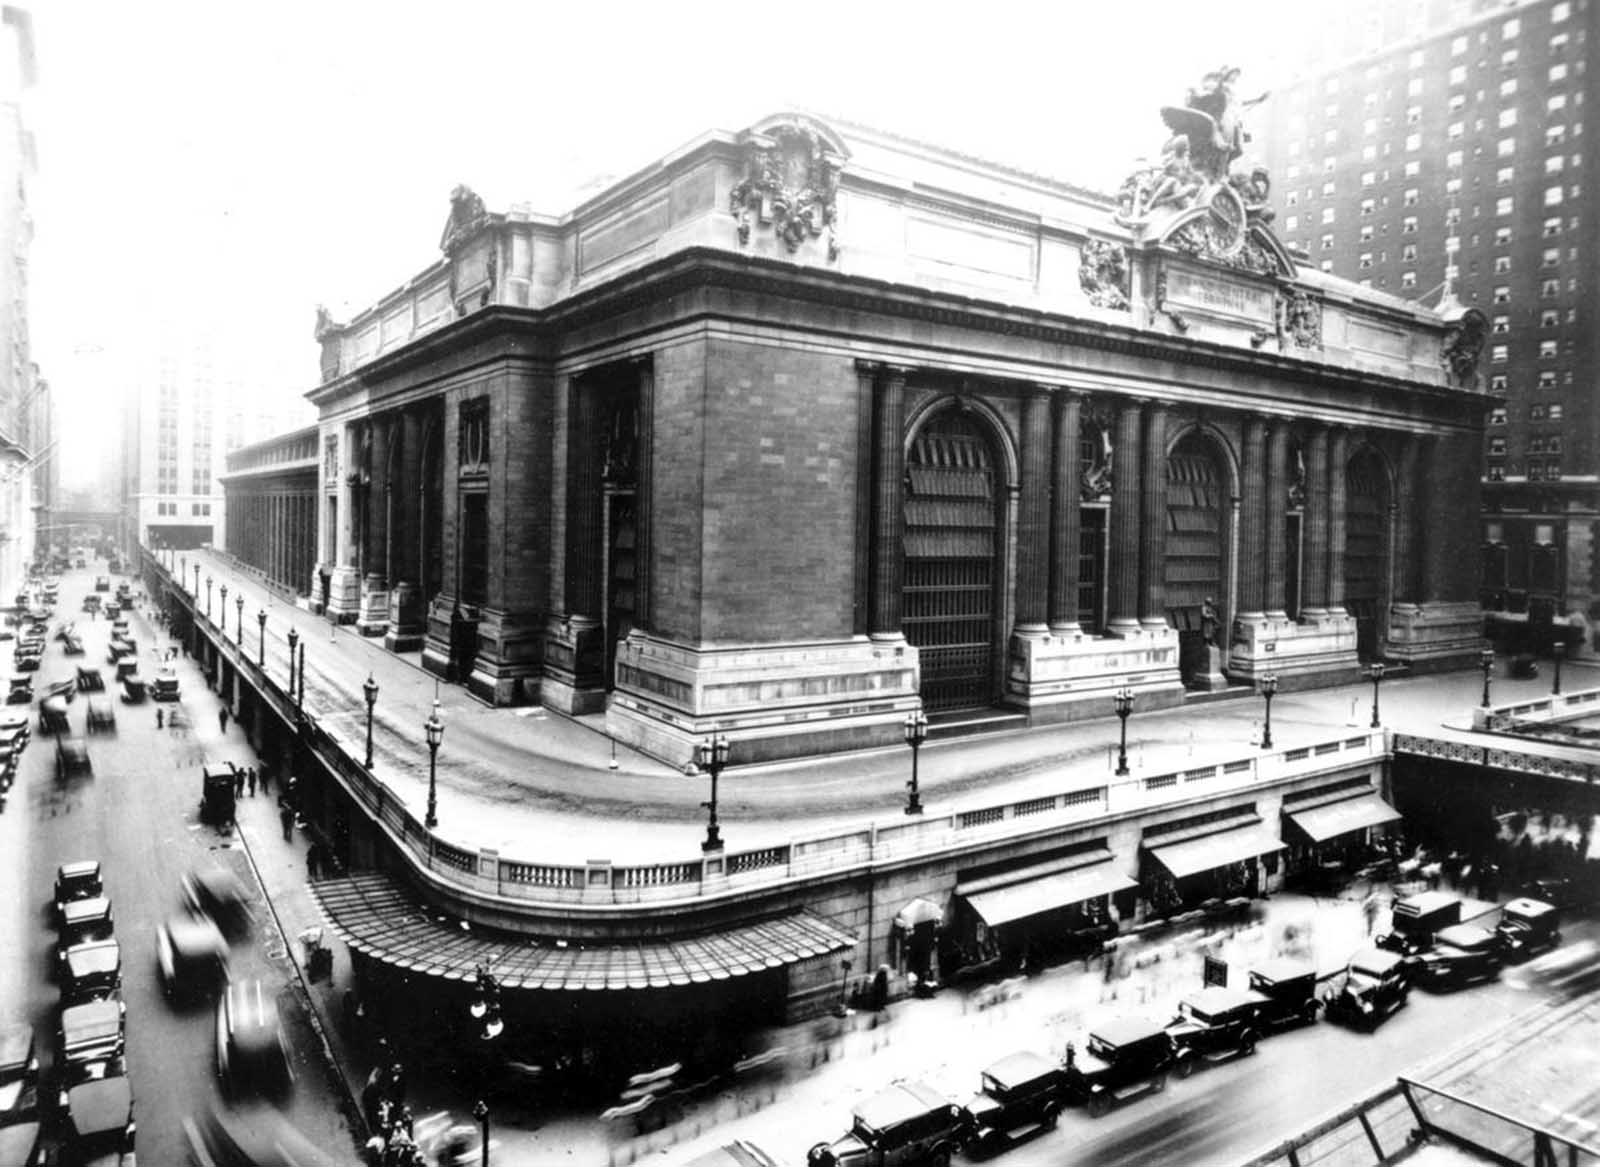 Grand Central Terminal at E. 42nd St. and Vanderbilt Ave. in New York City.